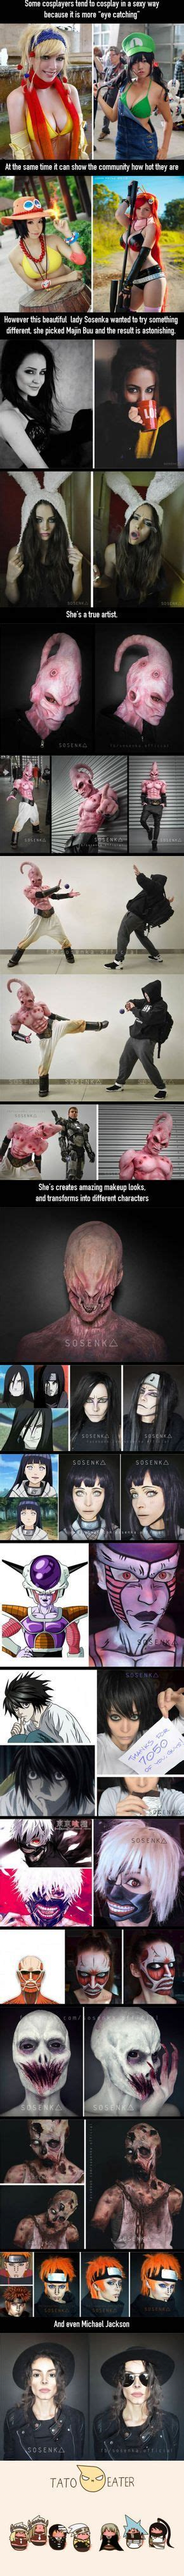 Buu Majin Buu T Shirt Epicline Project By Tap Kaos 39111 best images on ideas costumes and anime